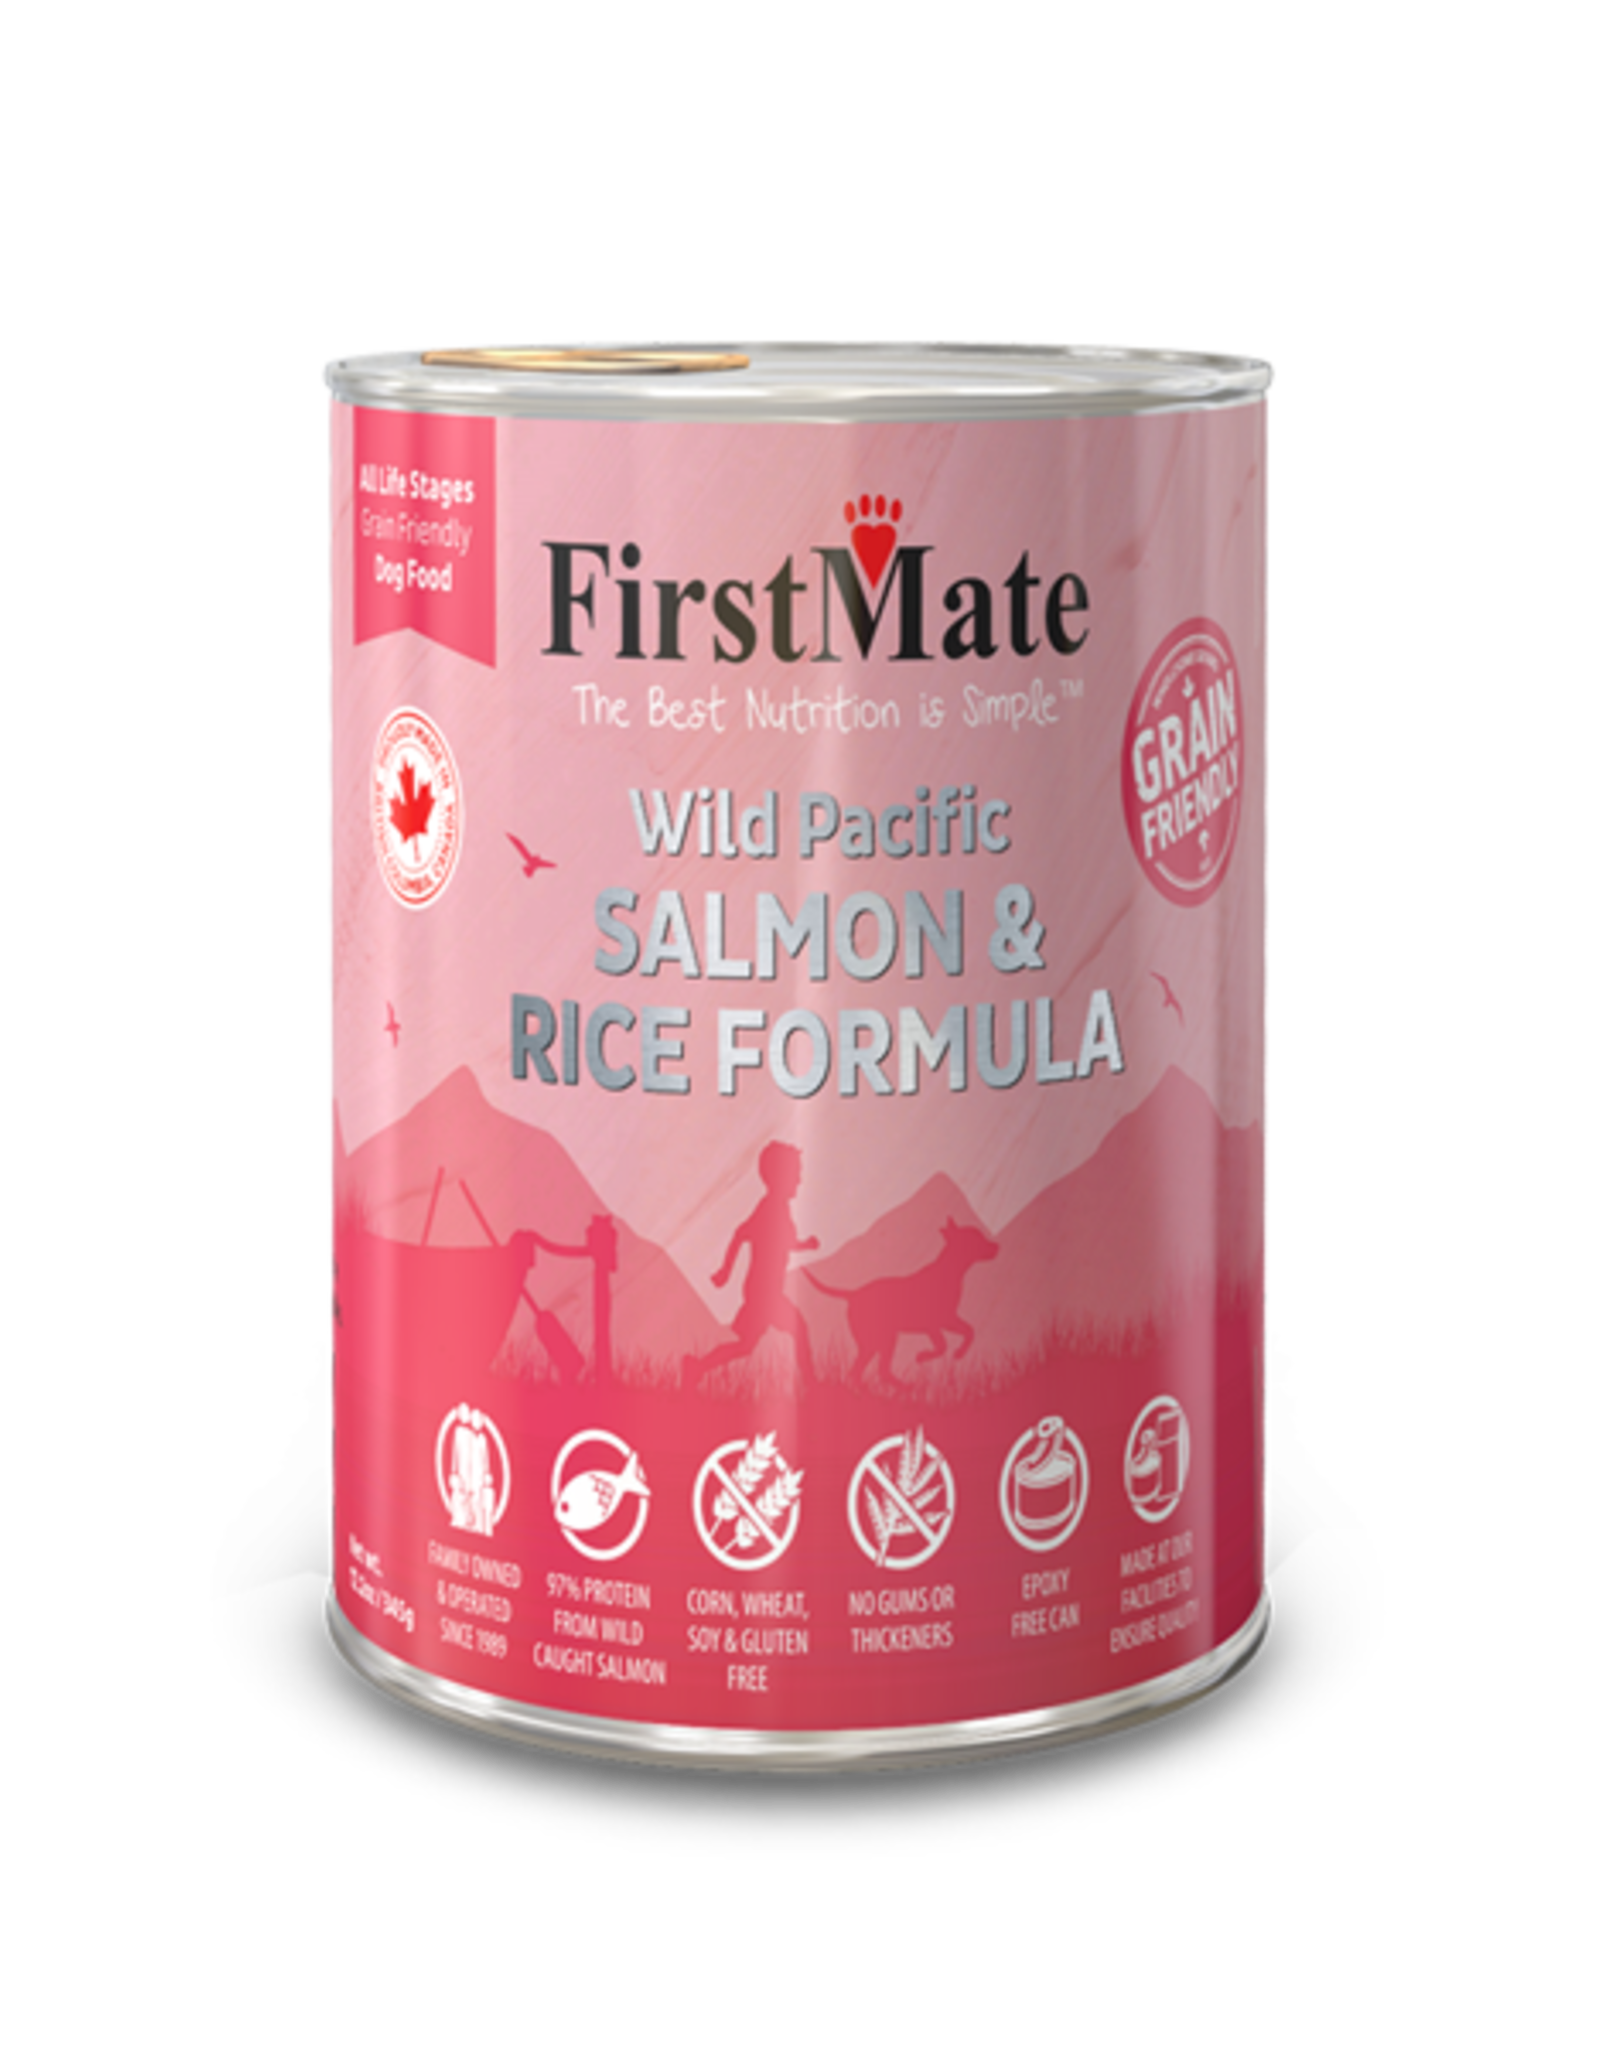 FirstMate Pet Food Dog Salmon & Rice Pate - Whole Grain 12oz